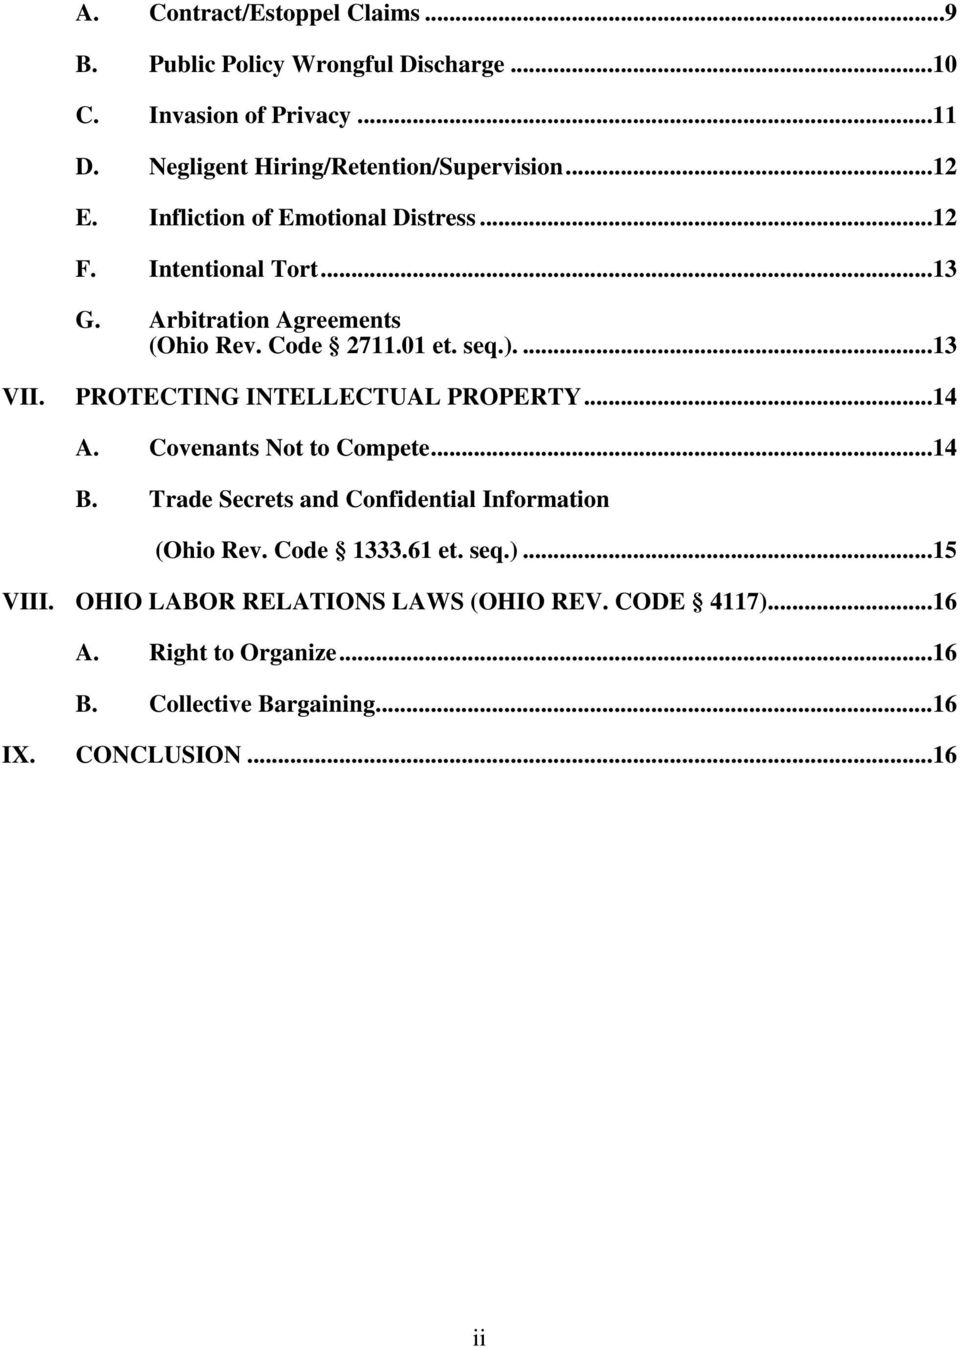 PROTECTING INTELLECTUAL PROPERTY...14 A. Covenants Not to Compete...14 B. Trade Secrets and Confidential Information (Ohio Rev. Code 1333.61 et.